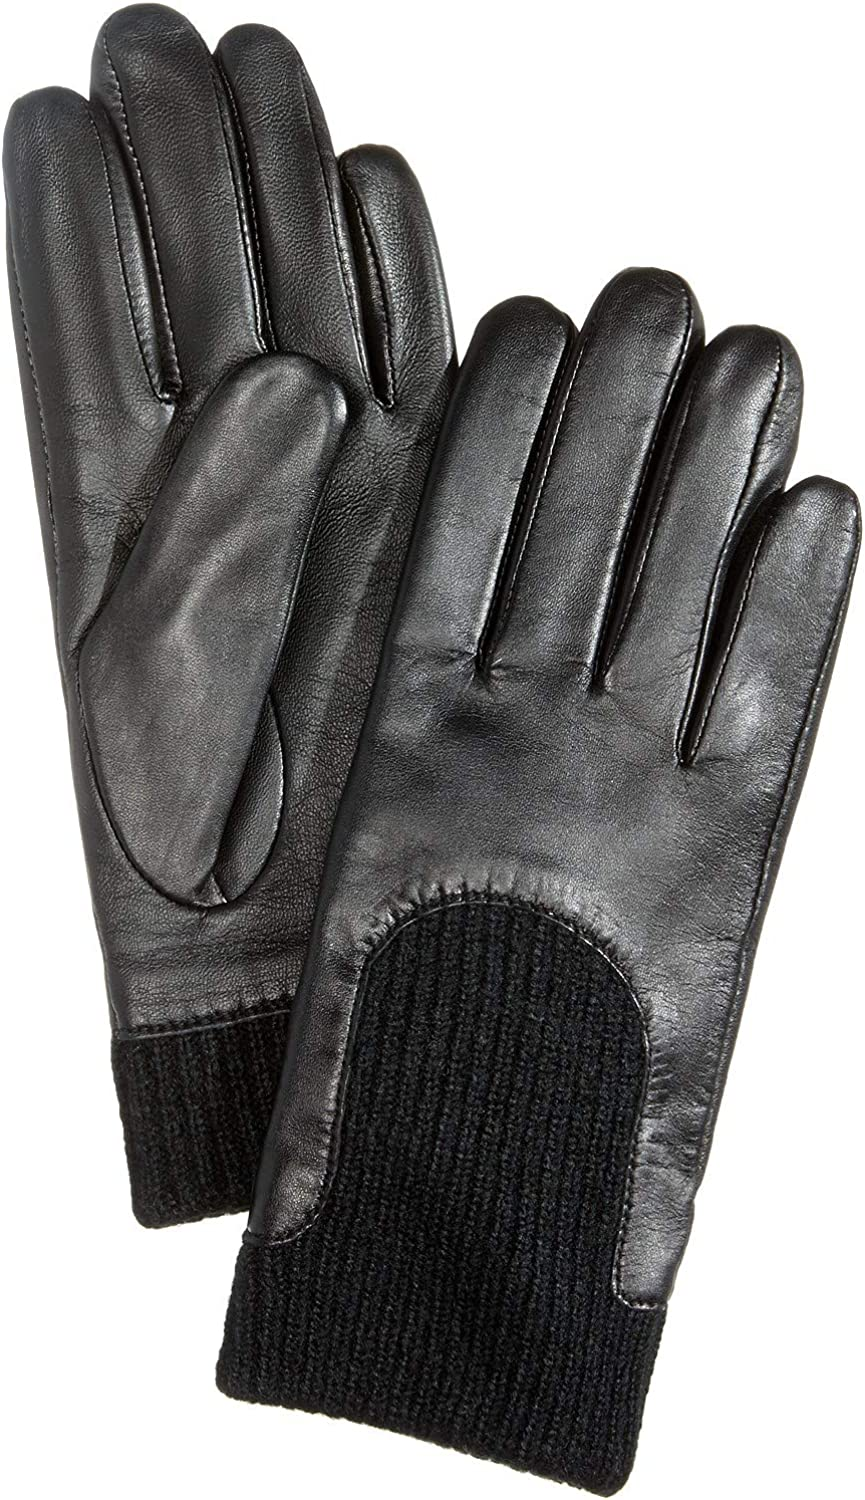 Charter Club Leather & Knit Touchscreen Gloves - Black, Medium